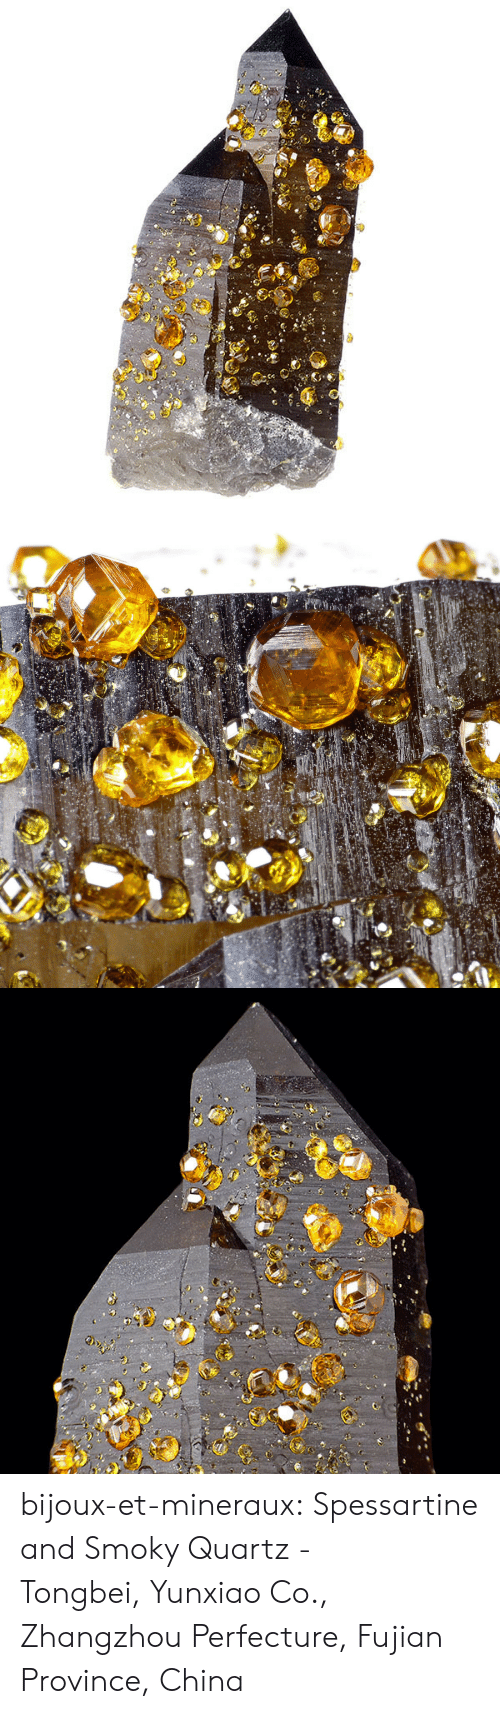 Target, Tumblr, and China: bijoux-et-mineraux:  Spessartine and Smoky Quartz -  Tongbei, Yunxiao Co., Zhangzhou Perfecture, Fujian Province, China